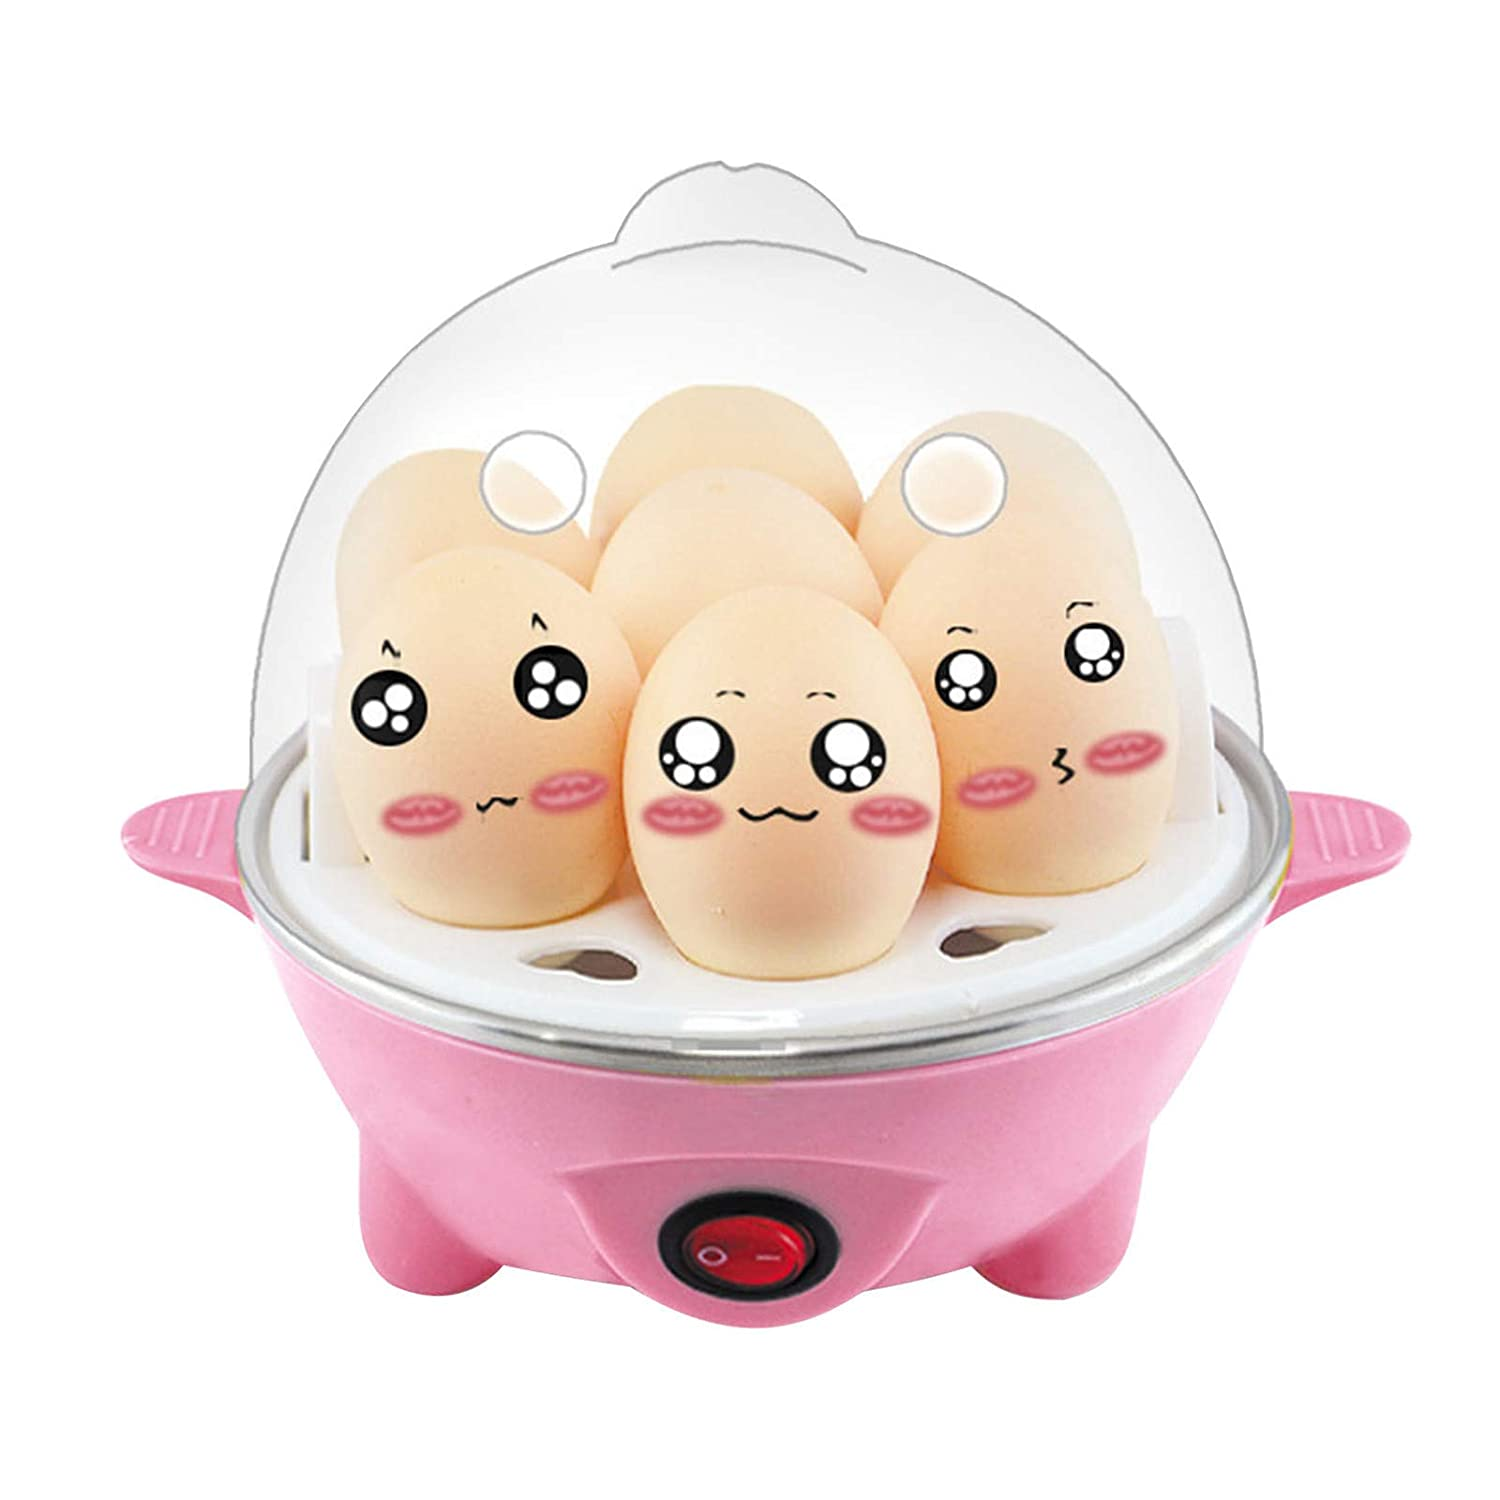 FIgures Rapid Egg Cooker, Easy Electric Egg Poacher, 7 Egg Capacity Electric Egg Cooker for Hard Boiled Eggs, Poached Eggs, Scrambled Eggs, Omelets, with Auto Shut Off Feature (Pink)